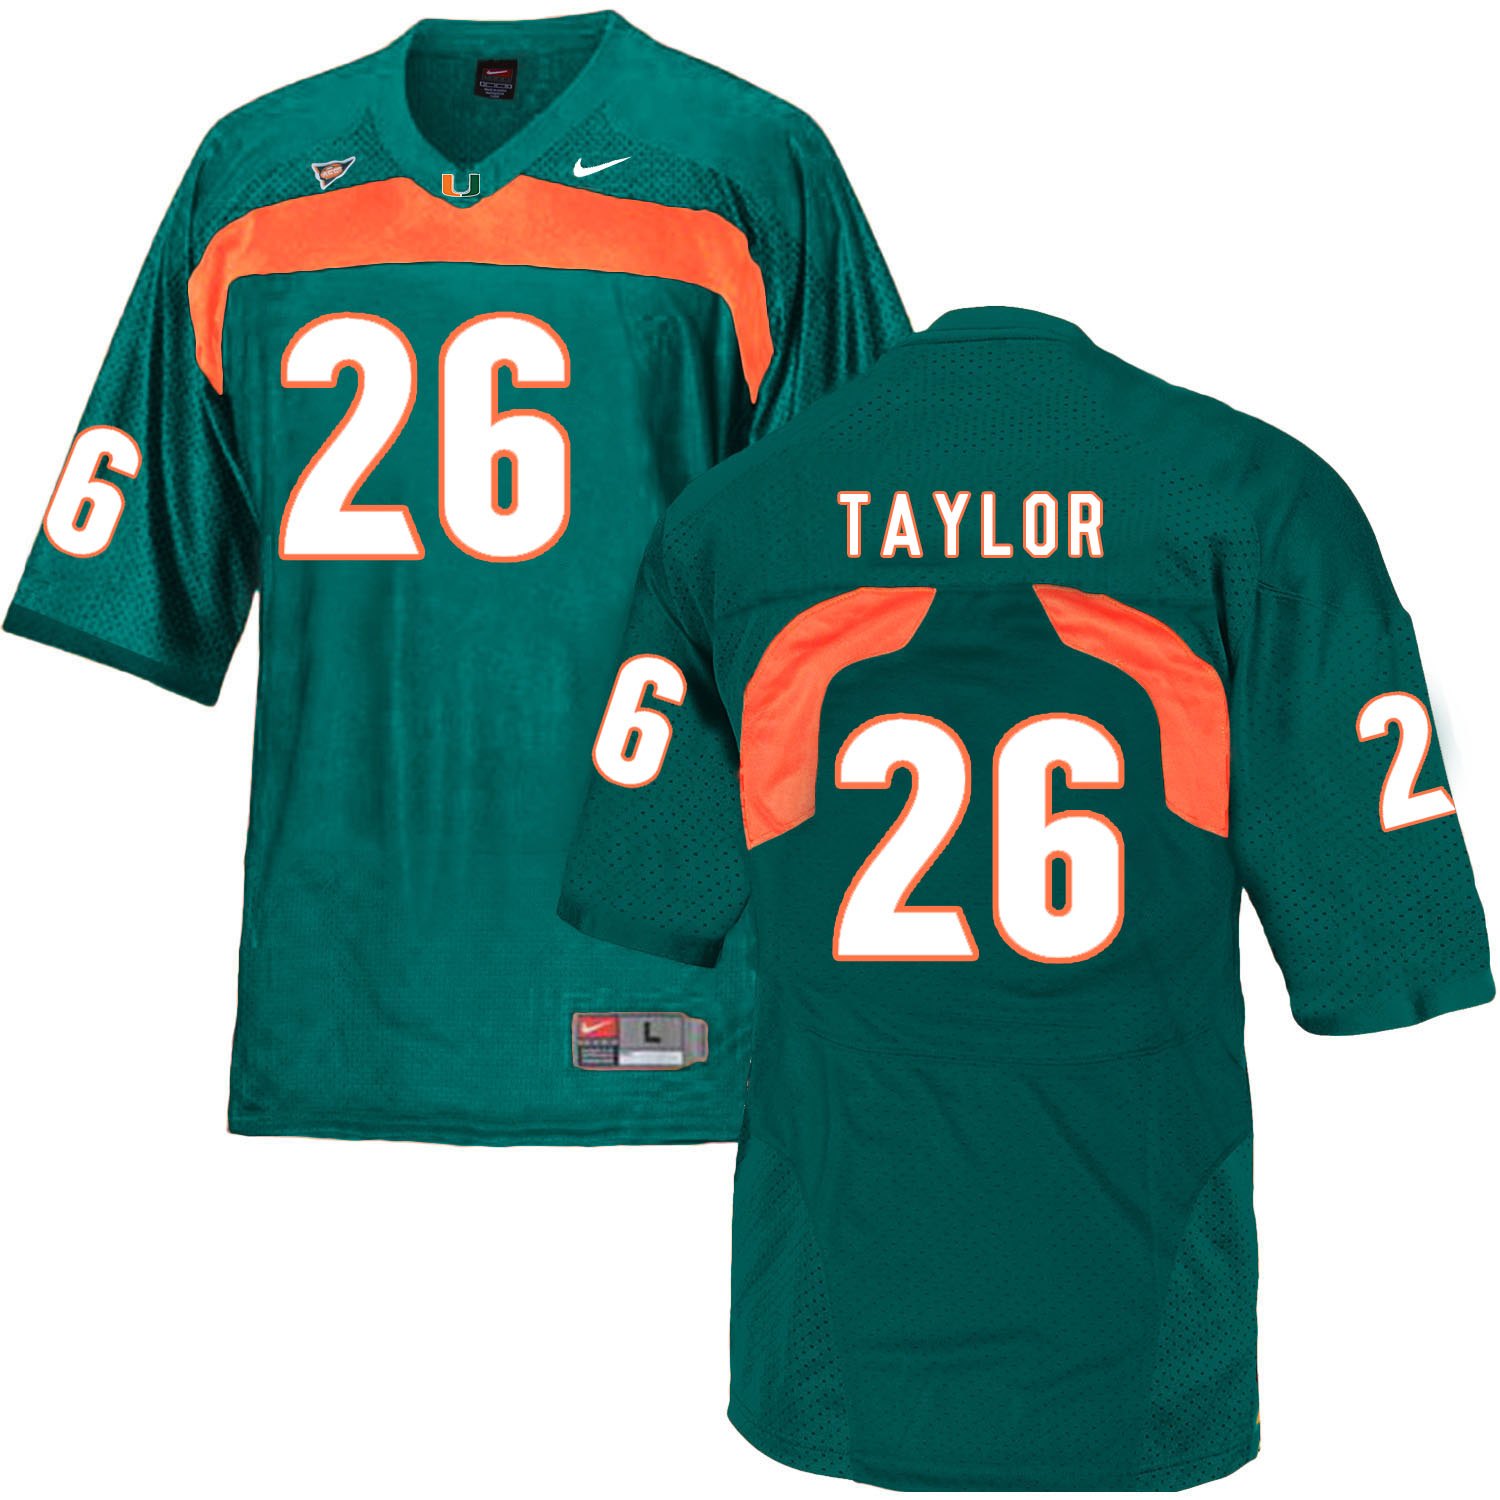 Miami Hurricanes 26 Sean Taylor Green College Football Jersey